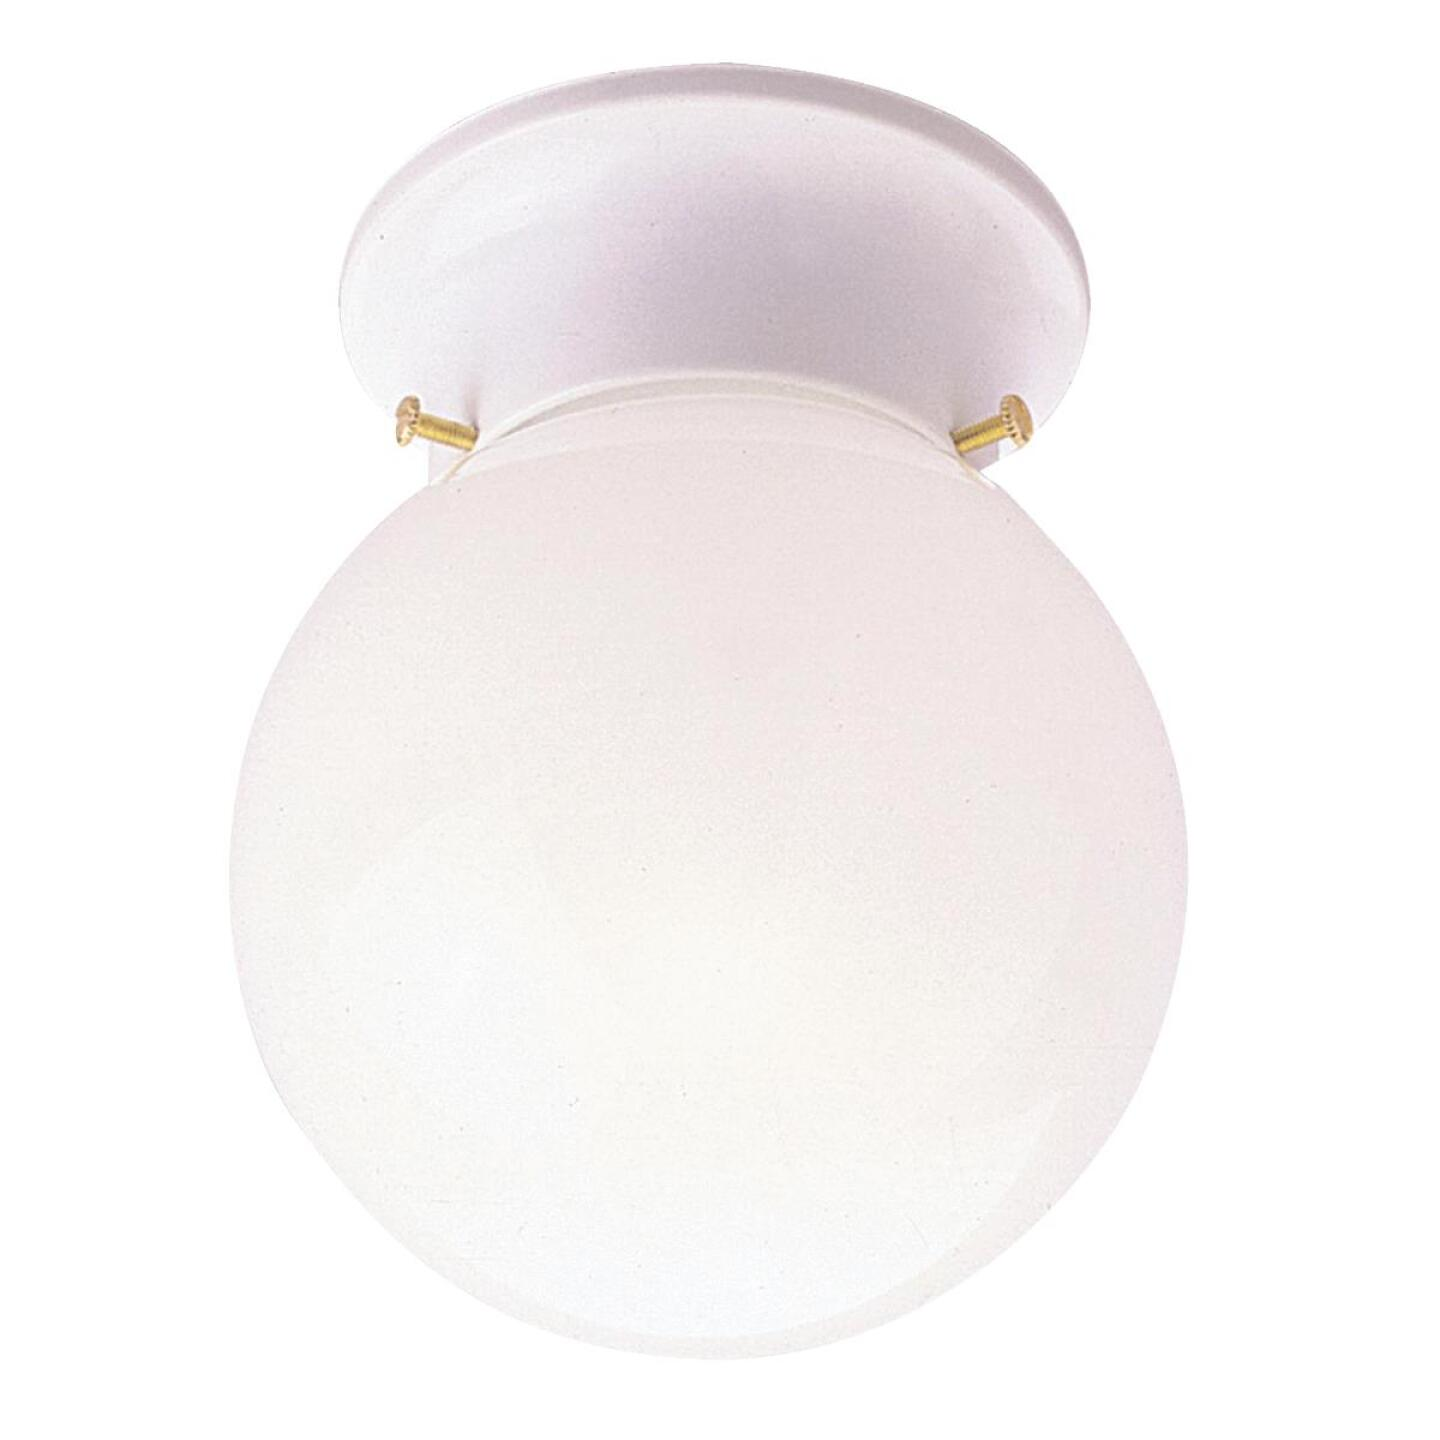 Home Impressions 6 In. White Incandescent Flush Mount Ceiling Light Fixture Image 1